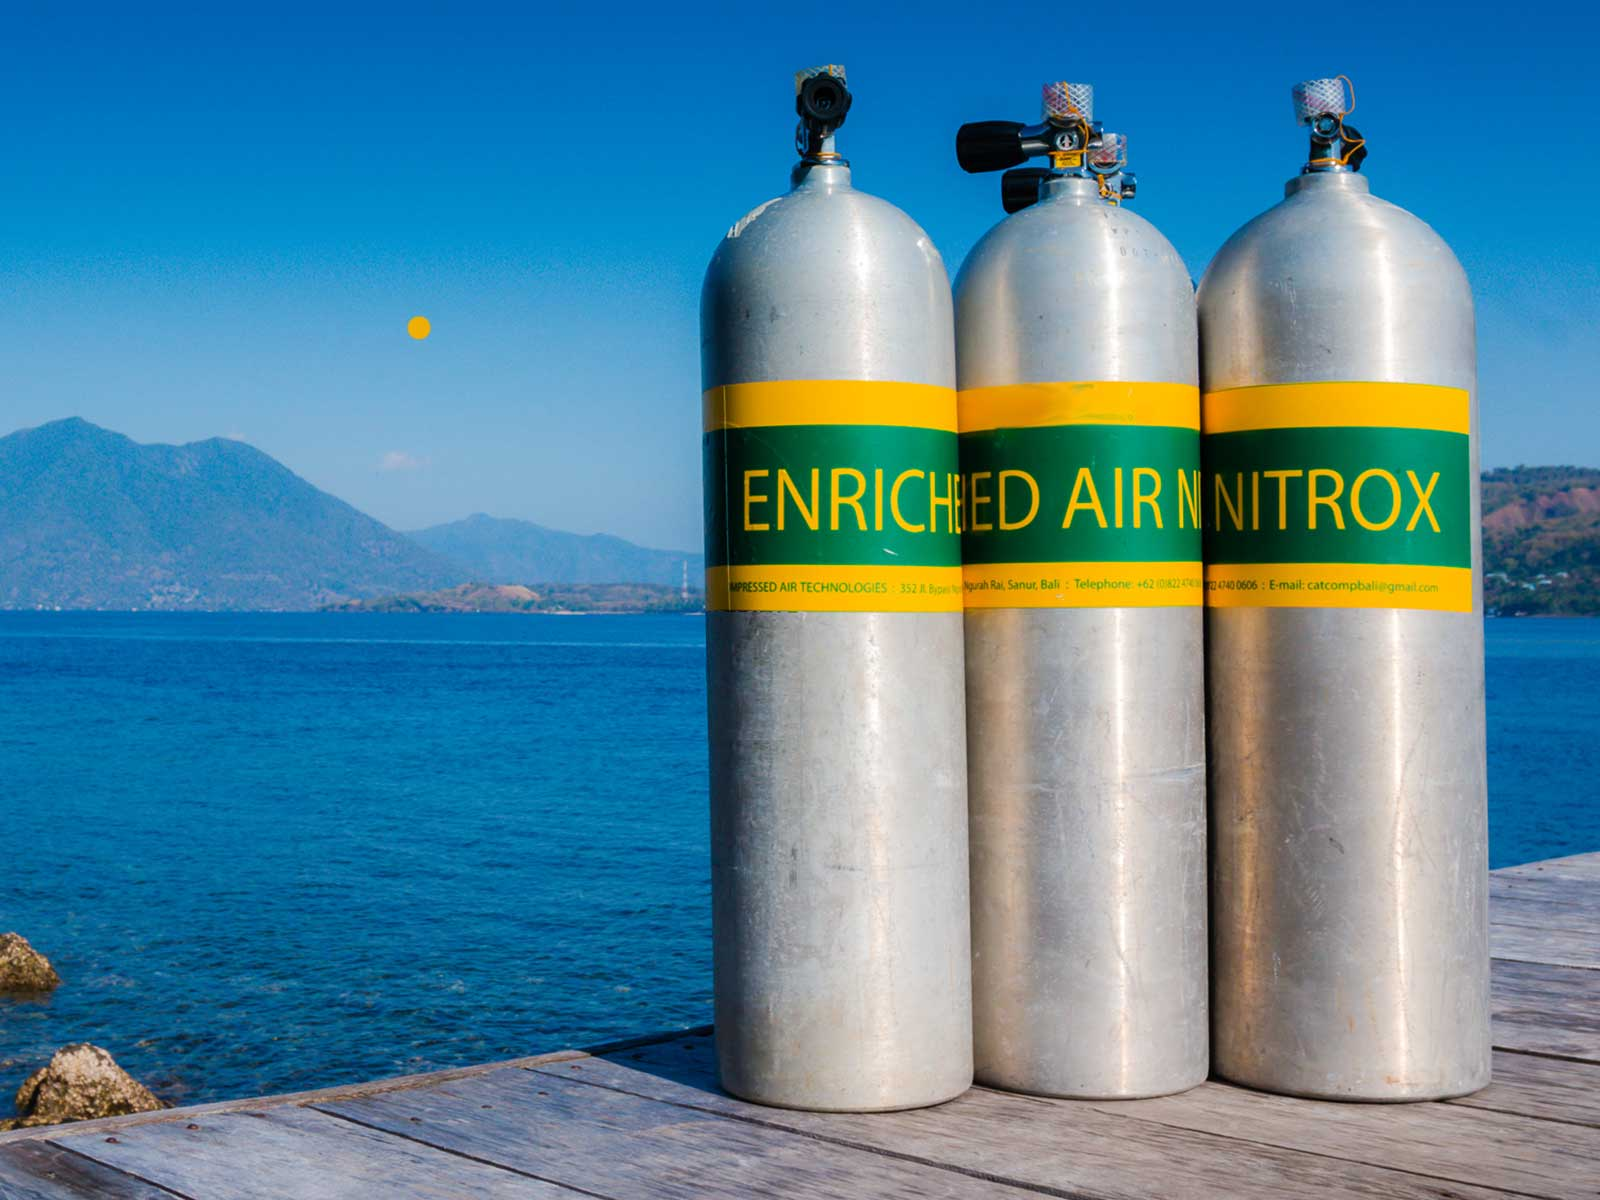 4 Reasons Why Enriched Air Nitrox Should Be Your Next Specialty